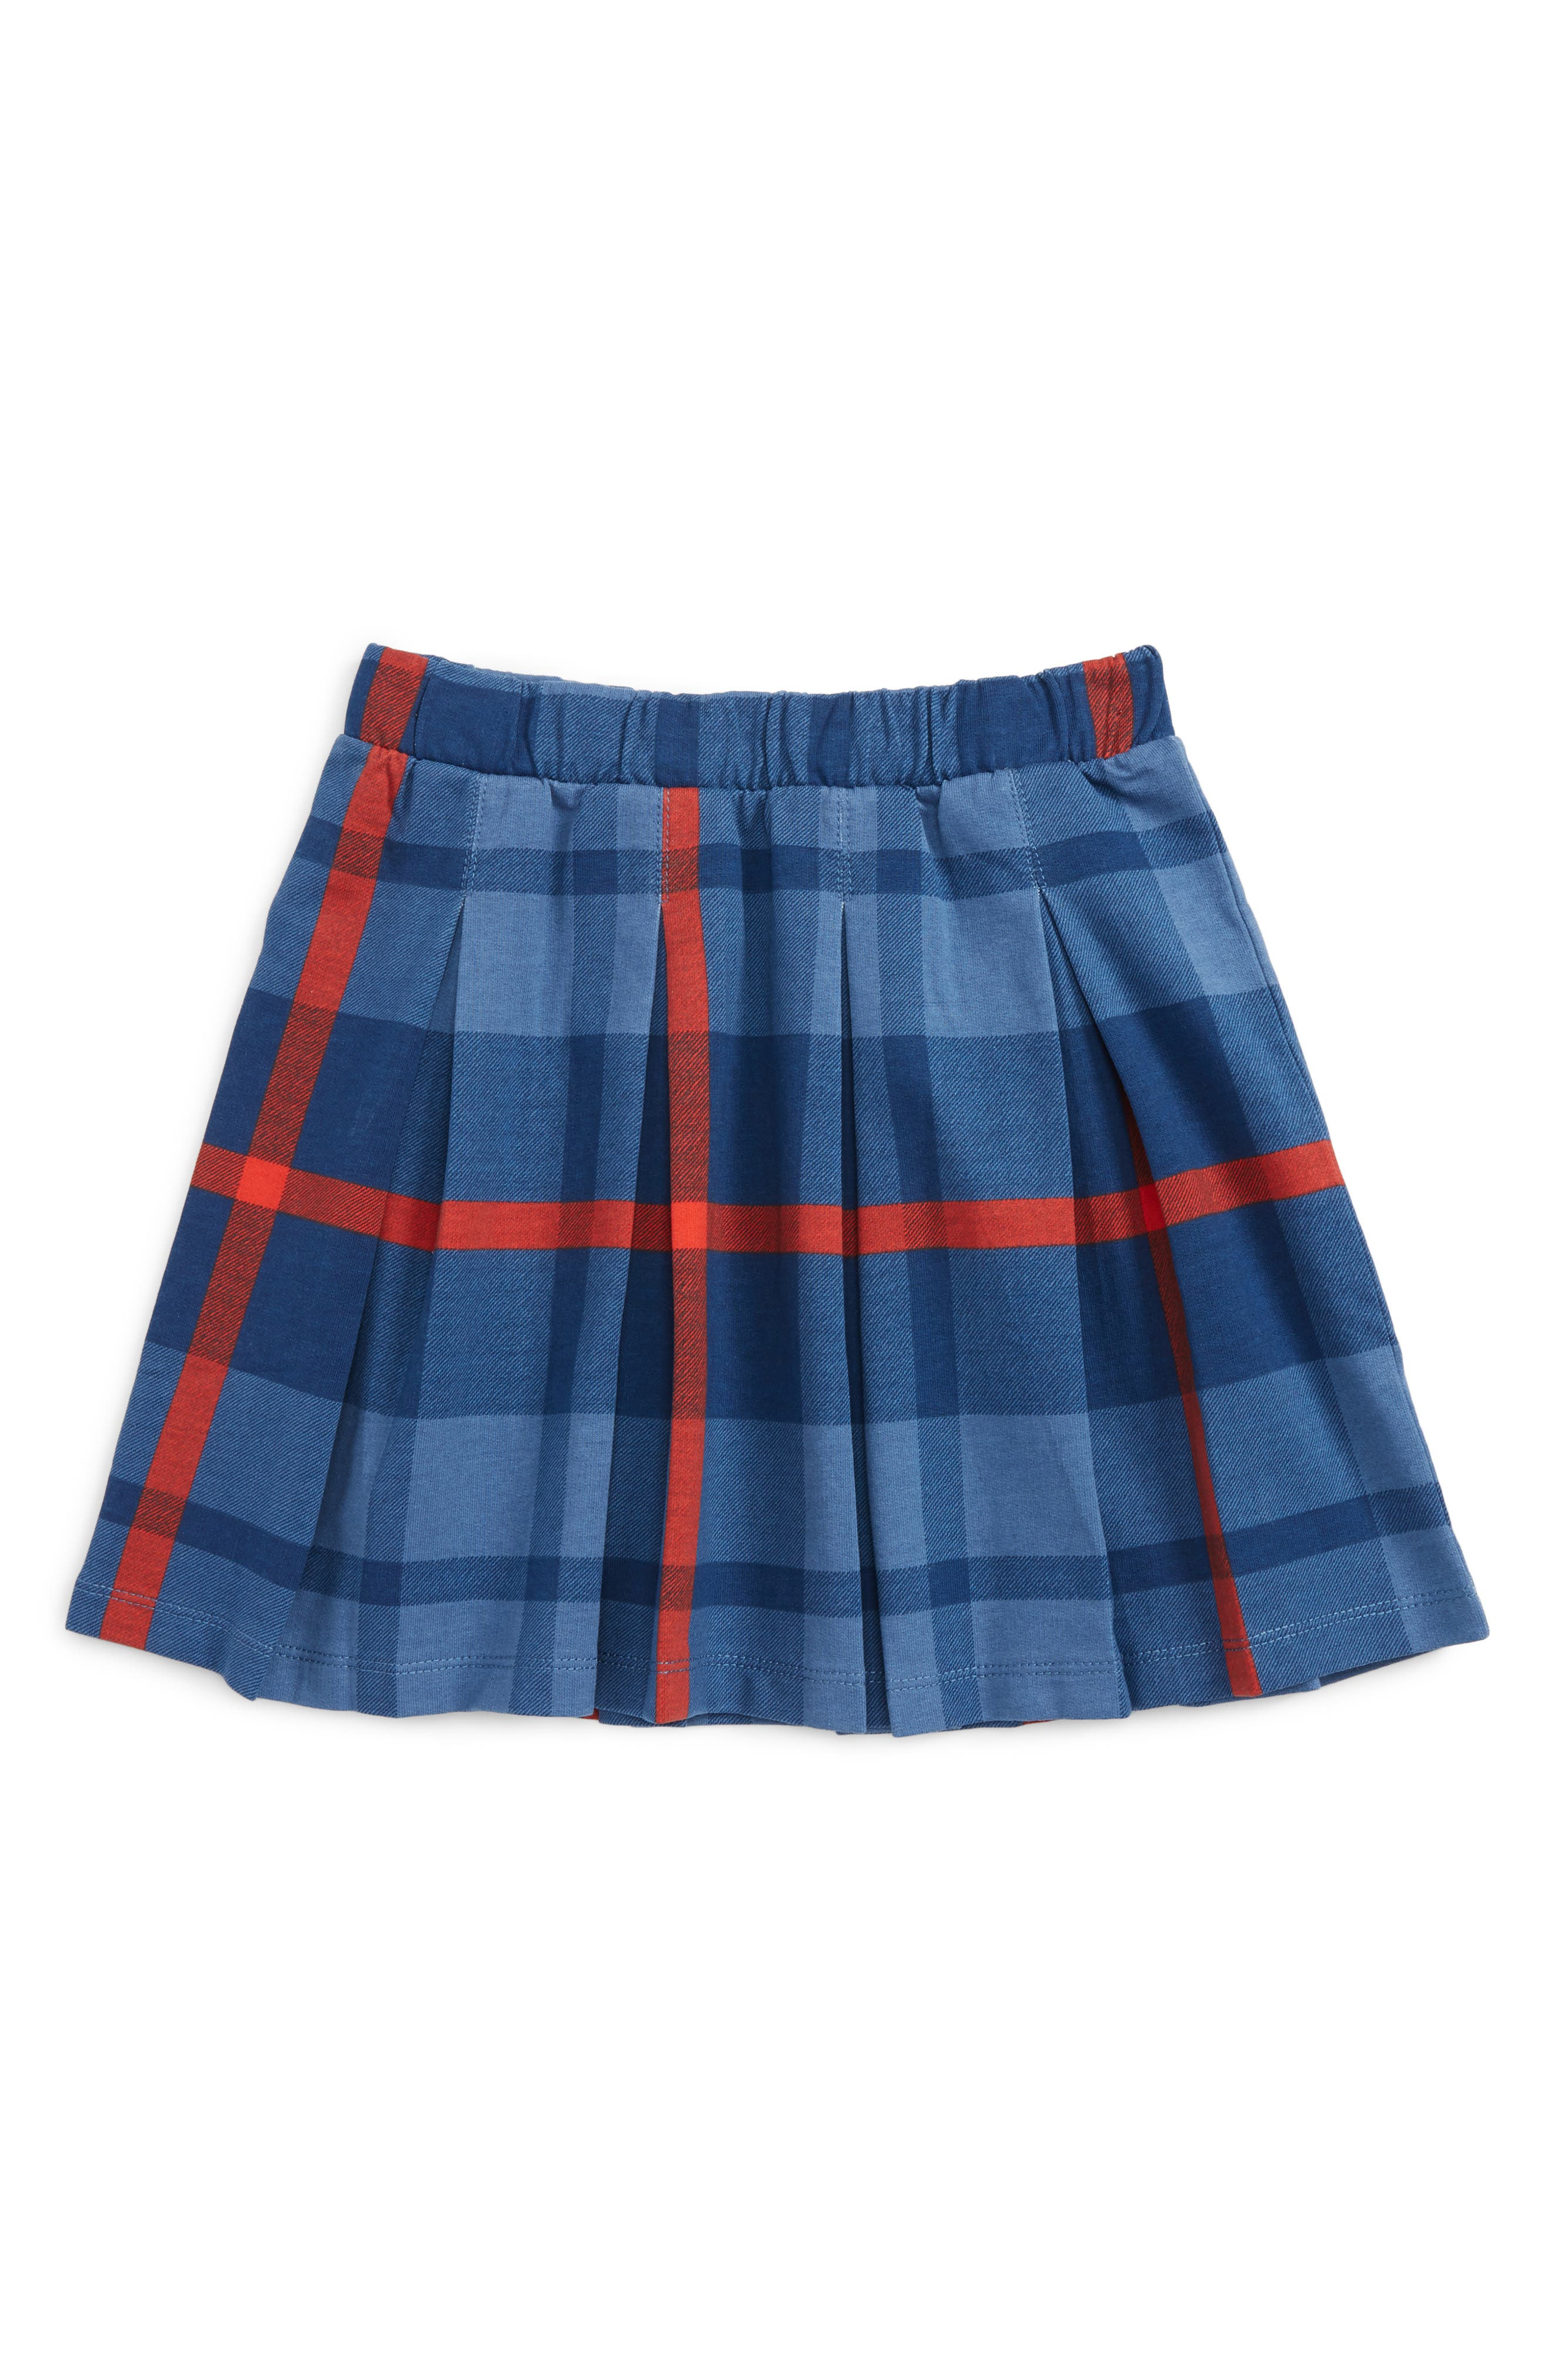 Tartan Pleated Skirt,                             Main thumbnail 1, color,                             French Blue